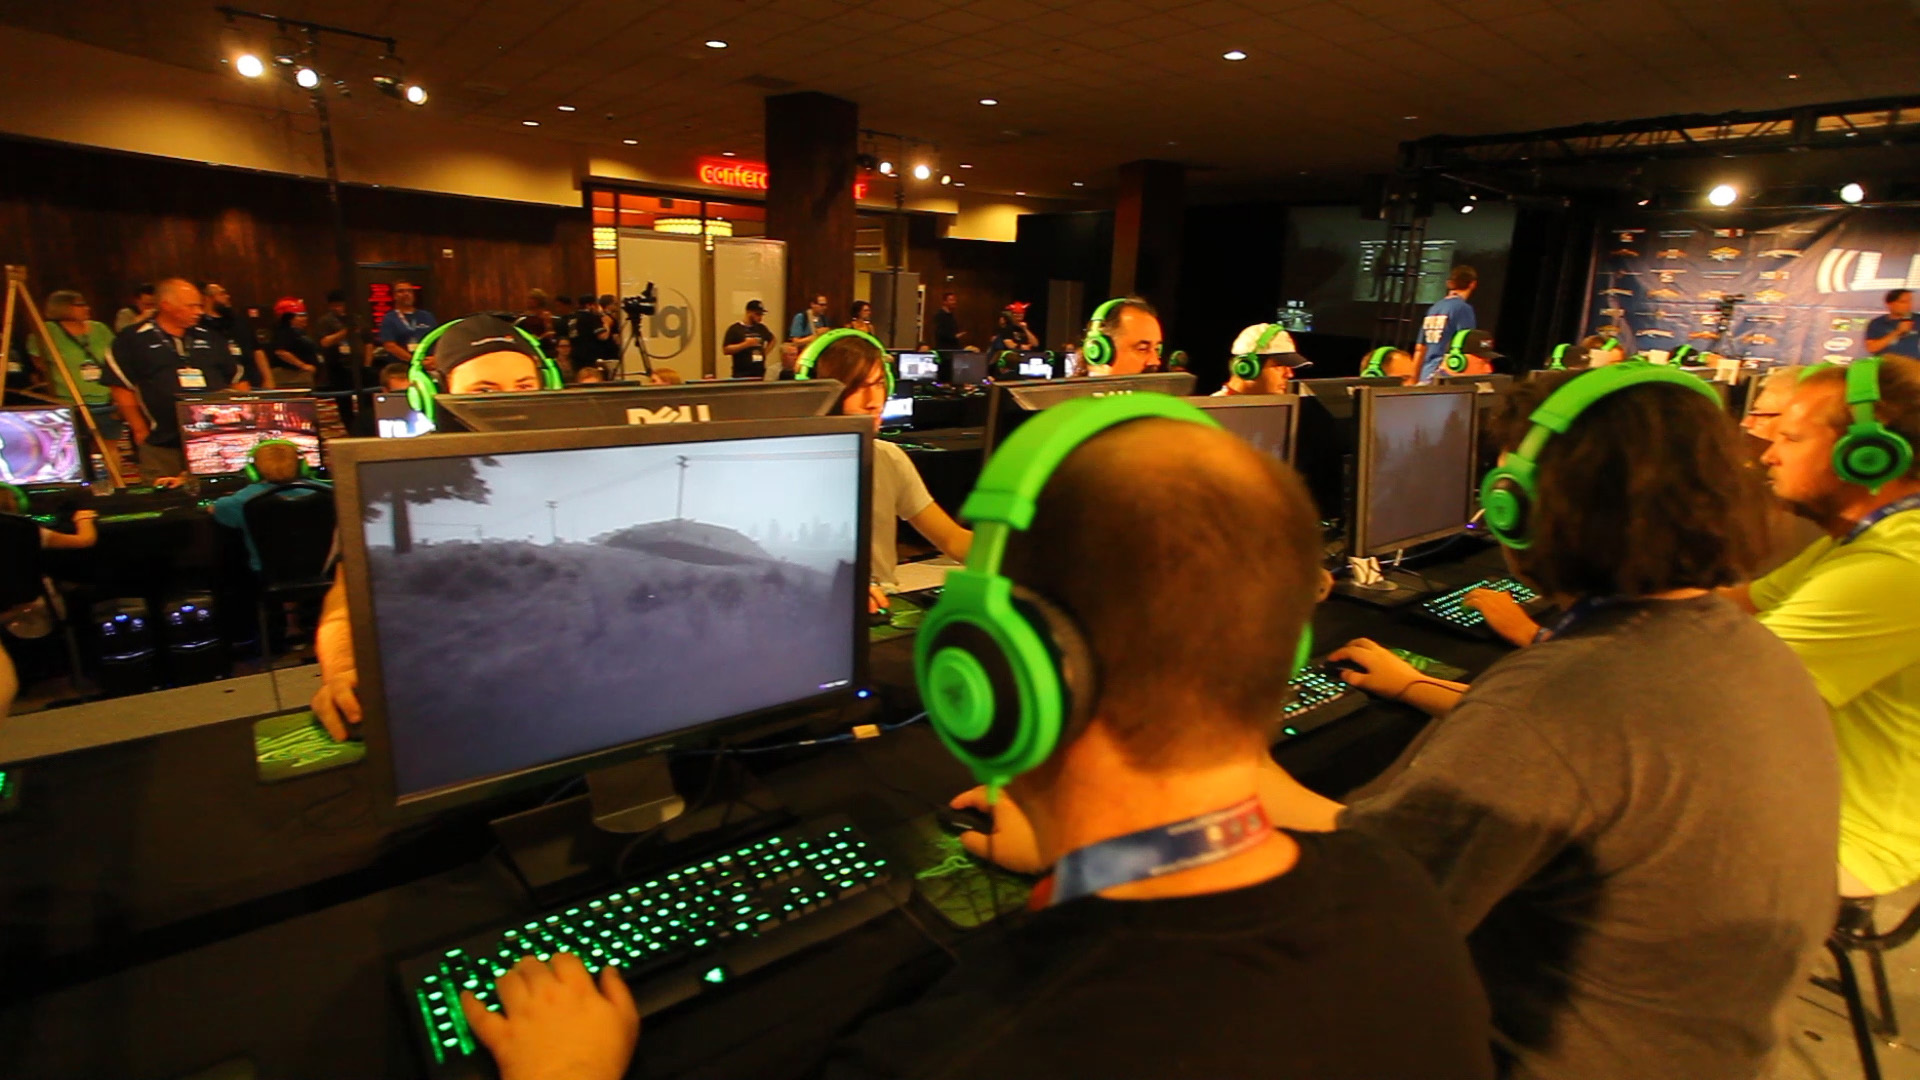 Daybreak Games is offering $150,000 in prize money for the best H1Z1 gamers.